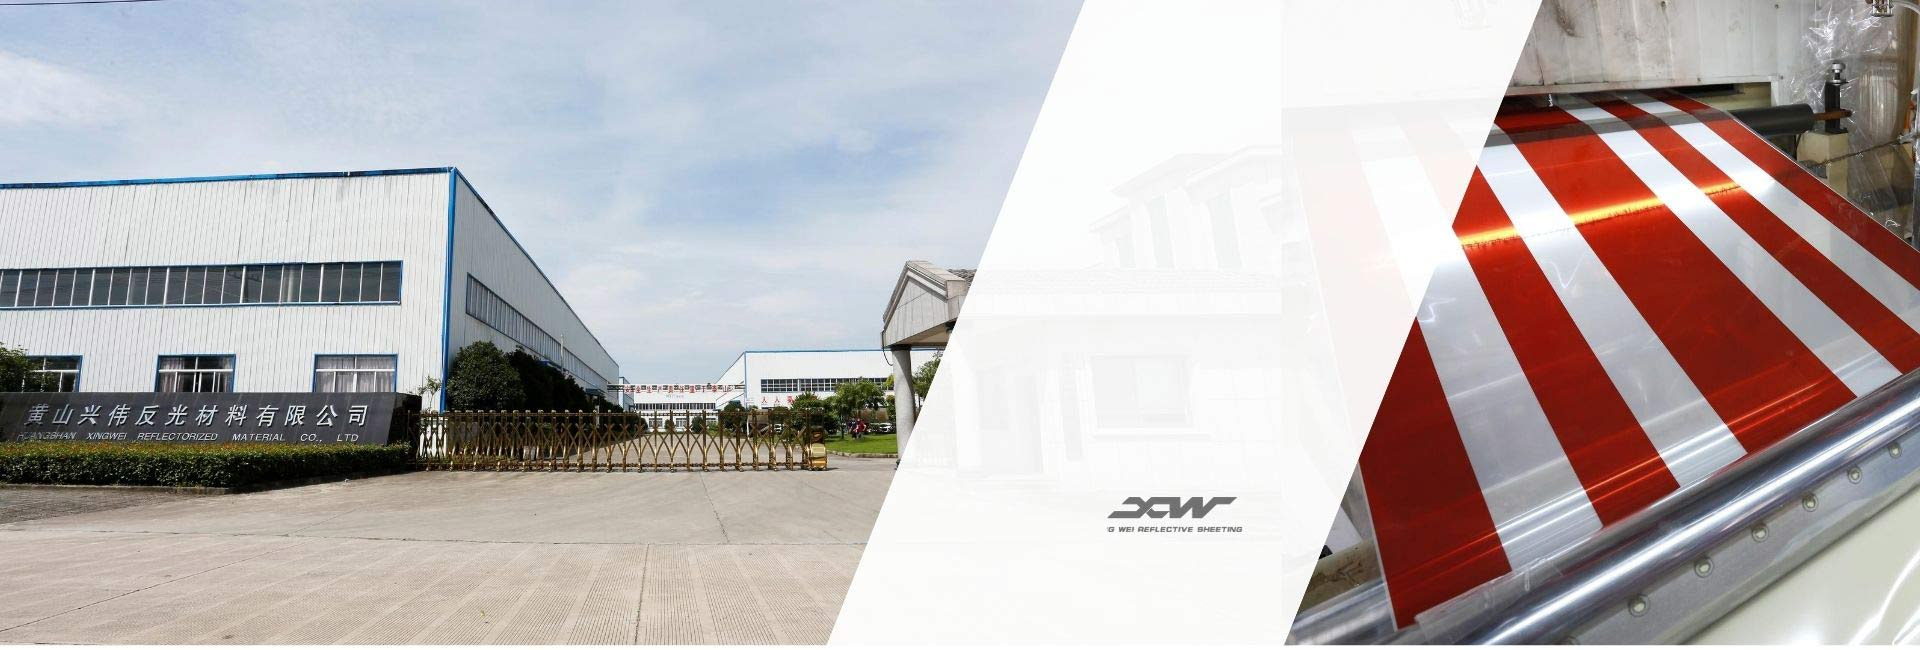 xw reflextive reflective material factory in China